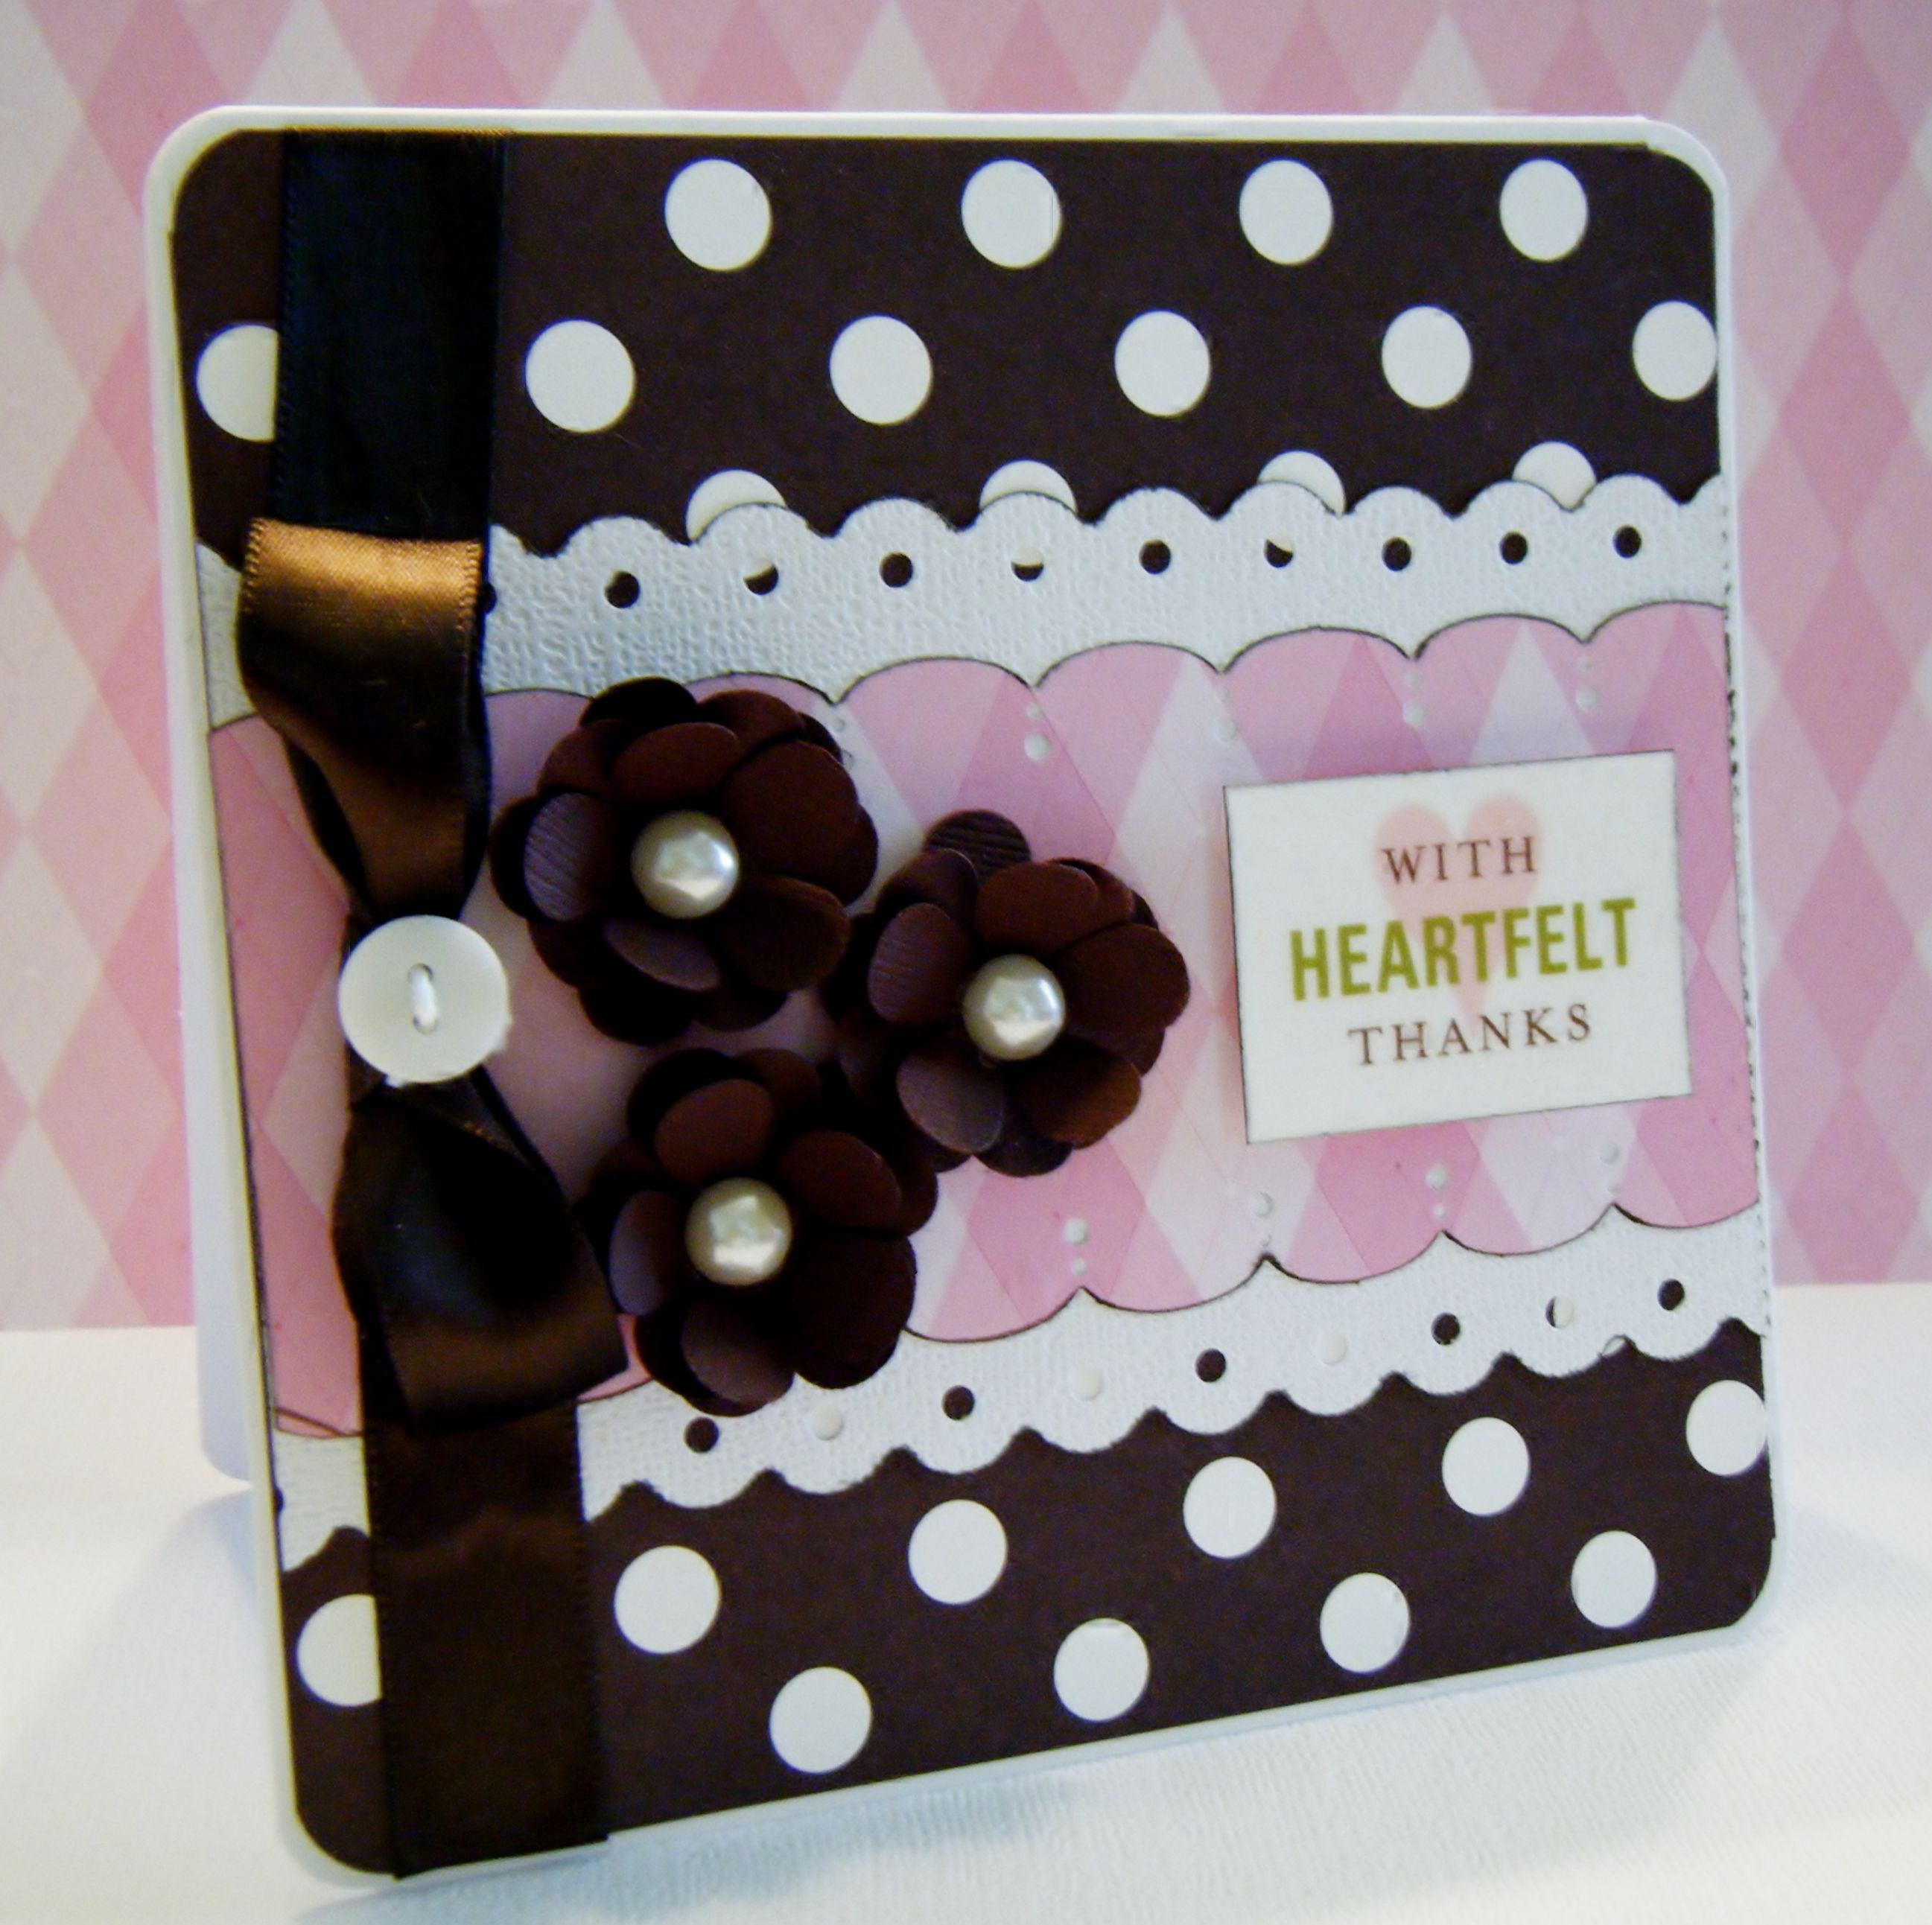 With Heartfelt Thanks - Scrapbook.com by Lisa Young